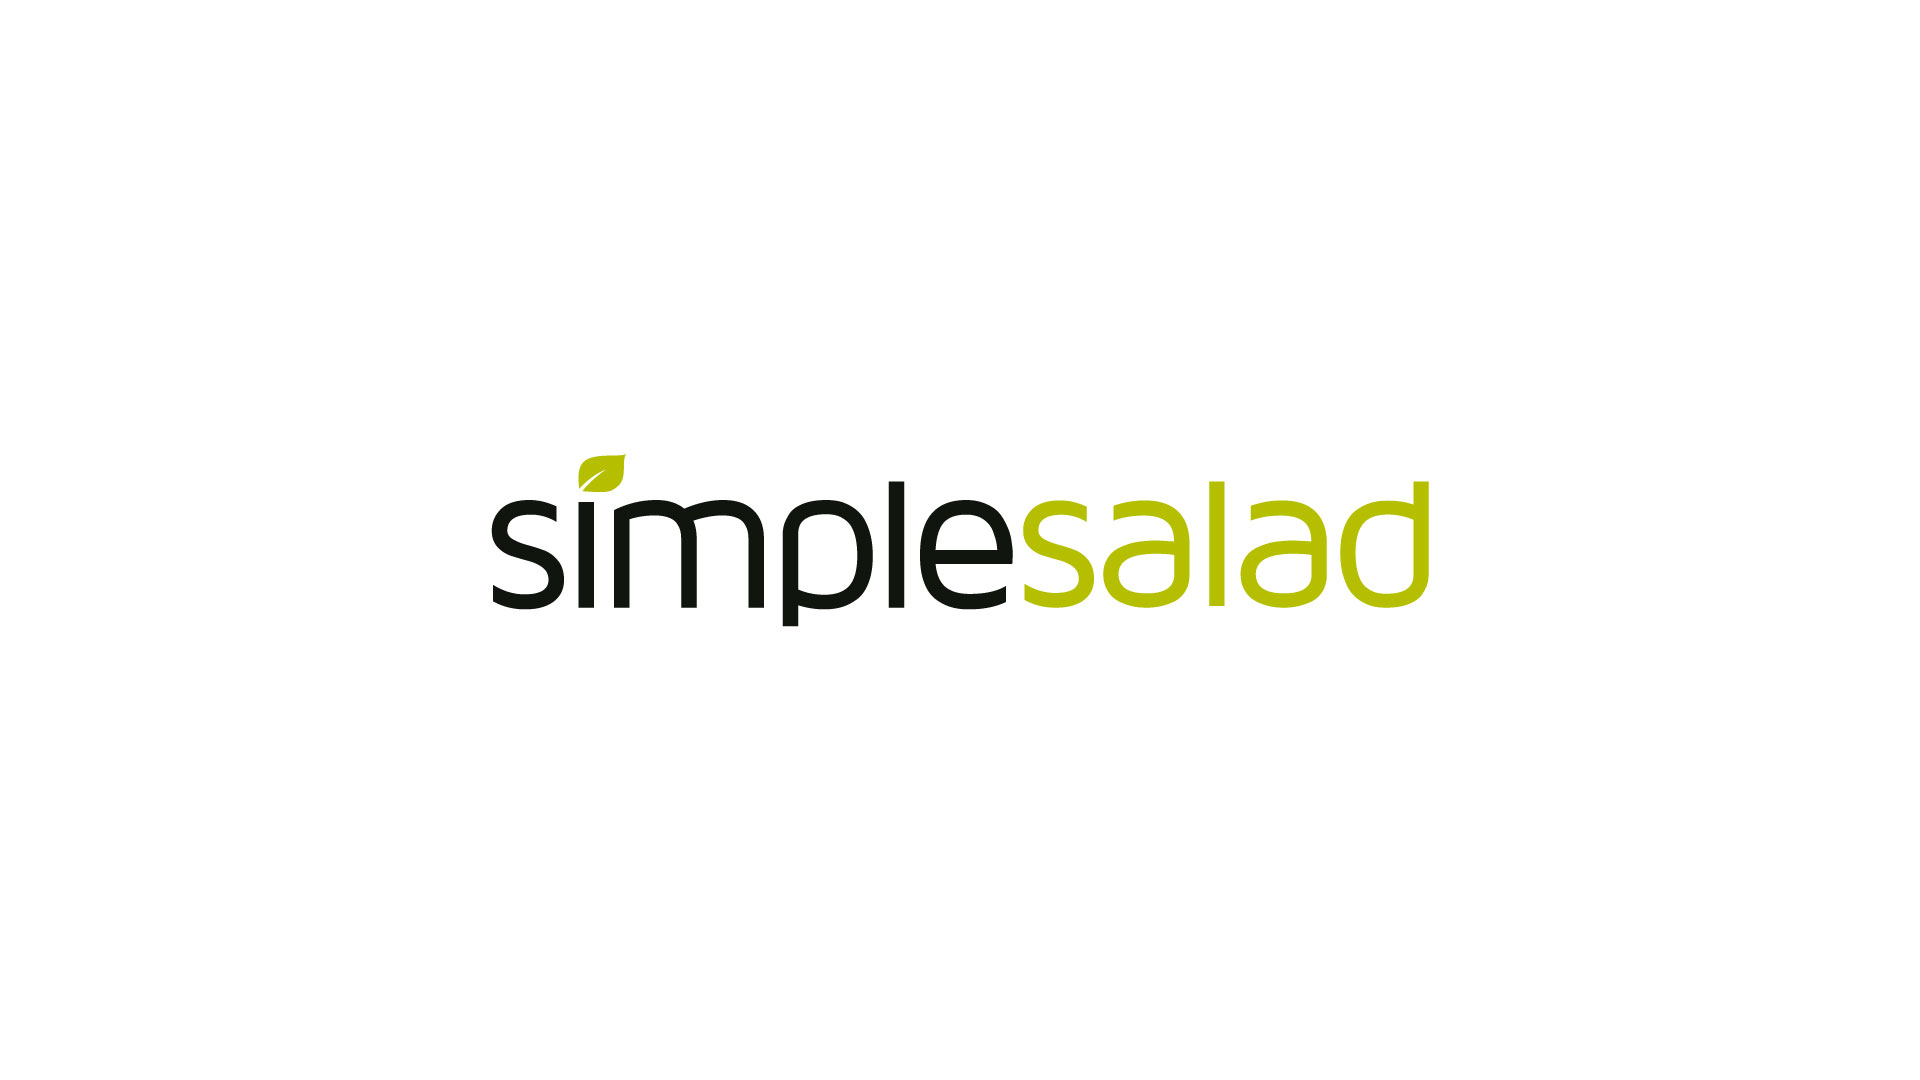 Simple Salad – Logotipo